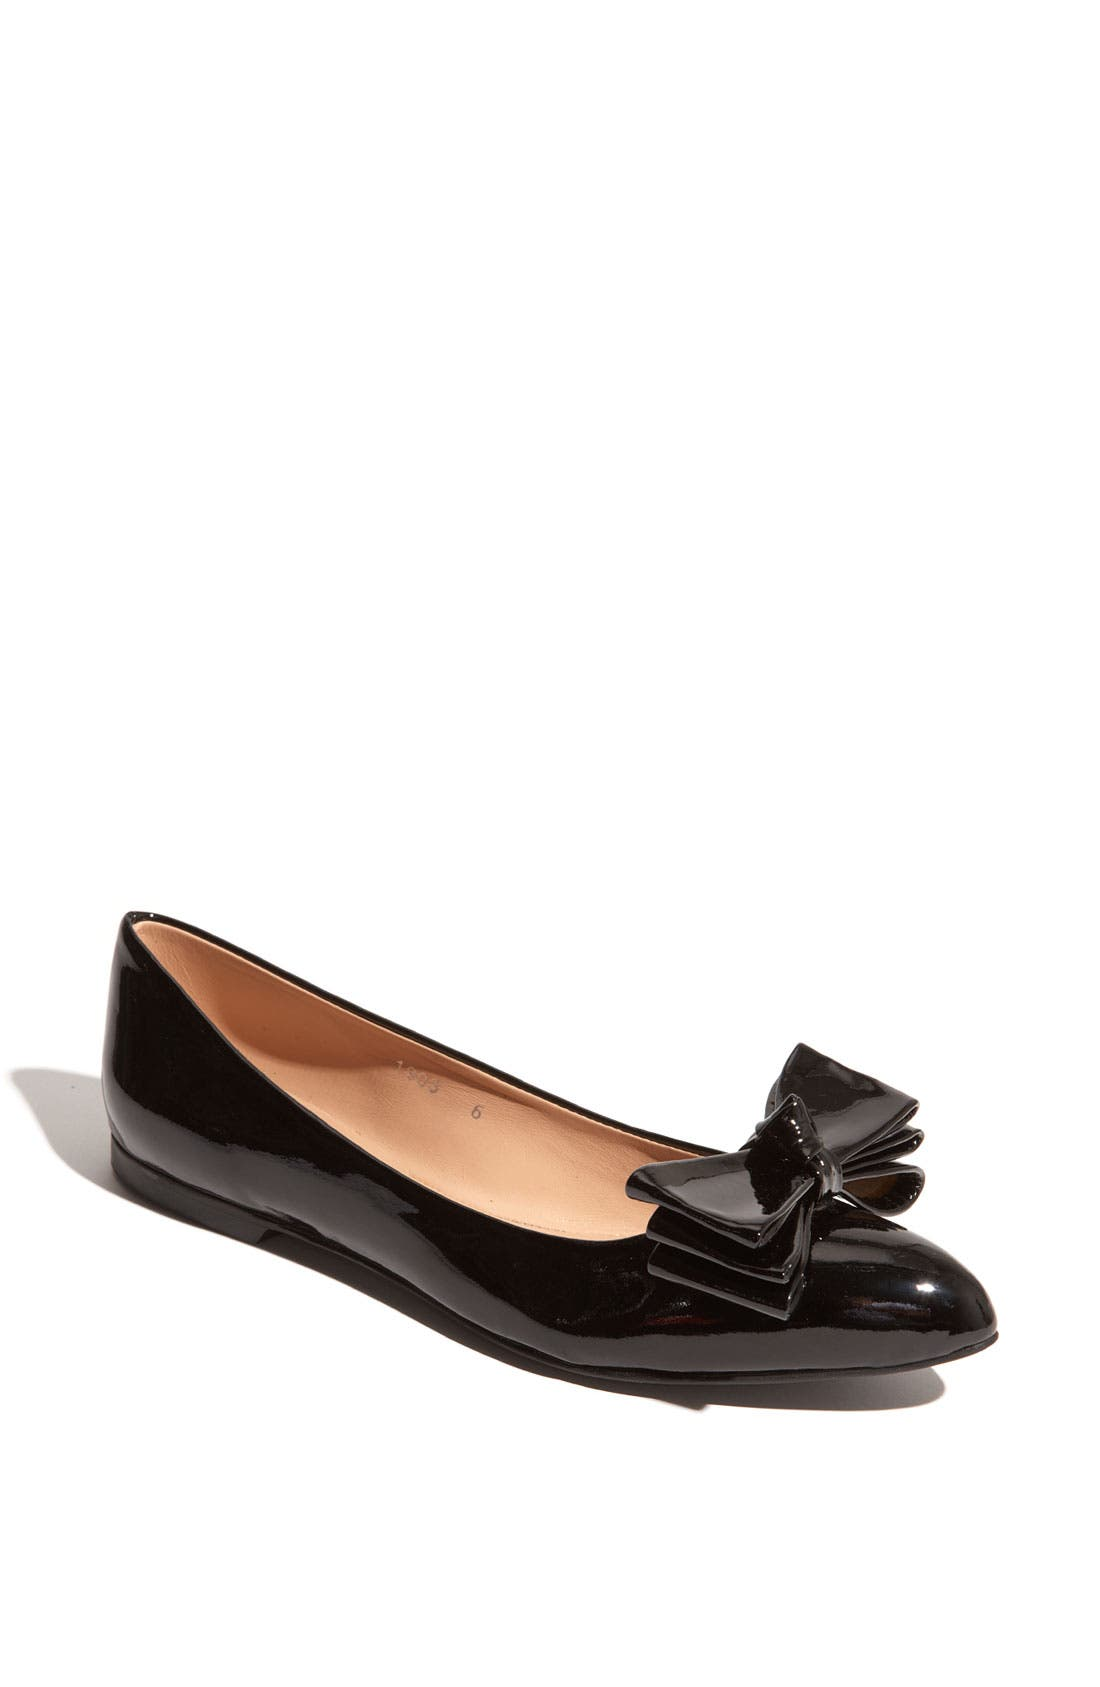 Alternate Image 1 Selected - Sweet Ballerina '1903' Bow Ballet Flat (Nordstrom Exclusive)